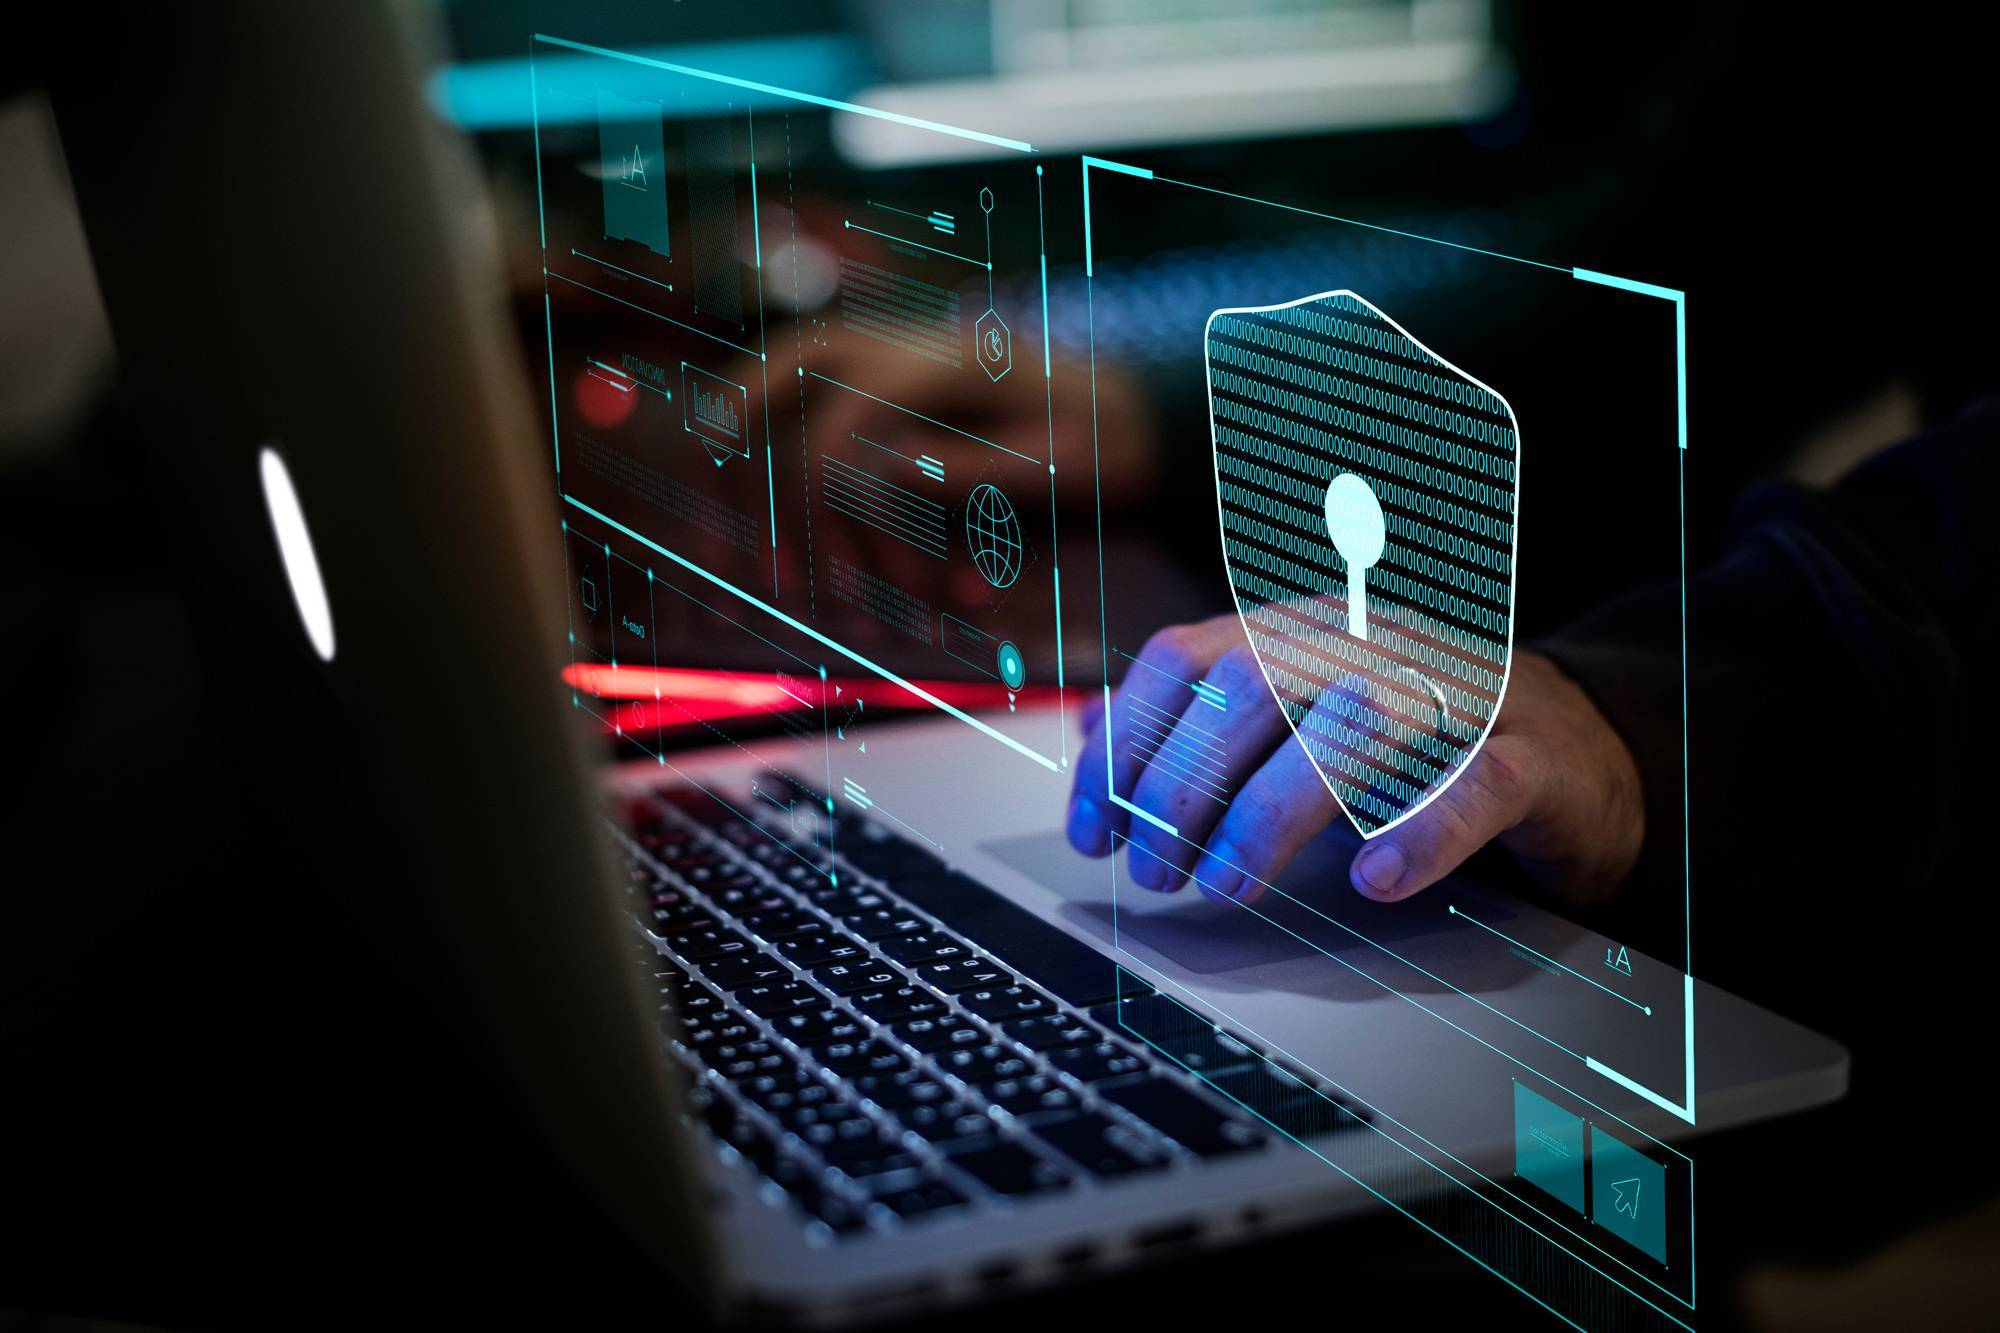 Hands typing on laptop with cyber security floating graphics.